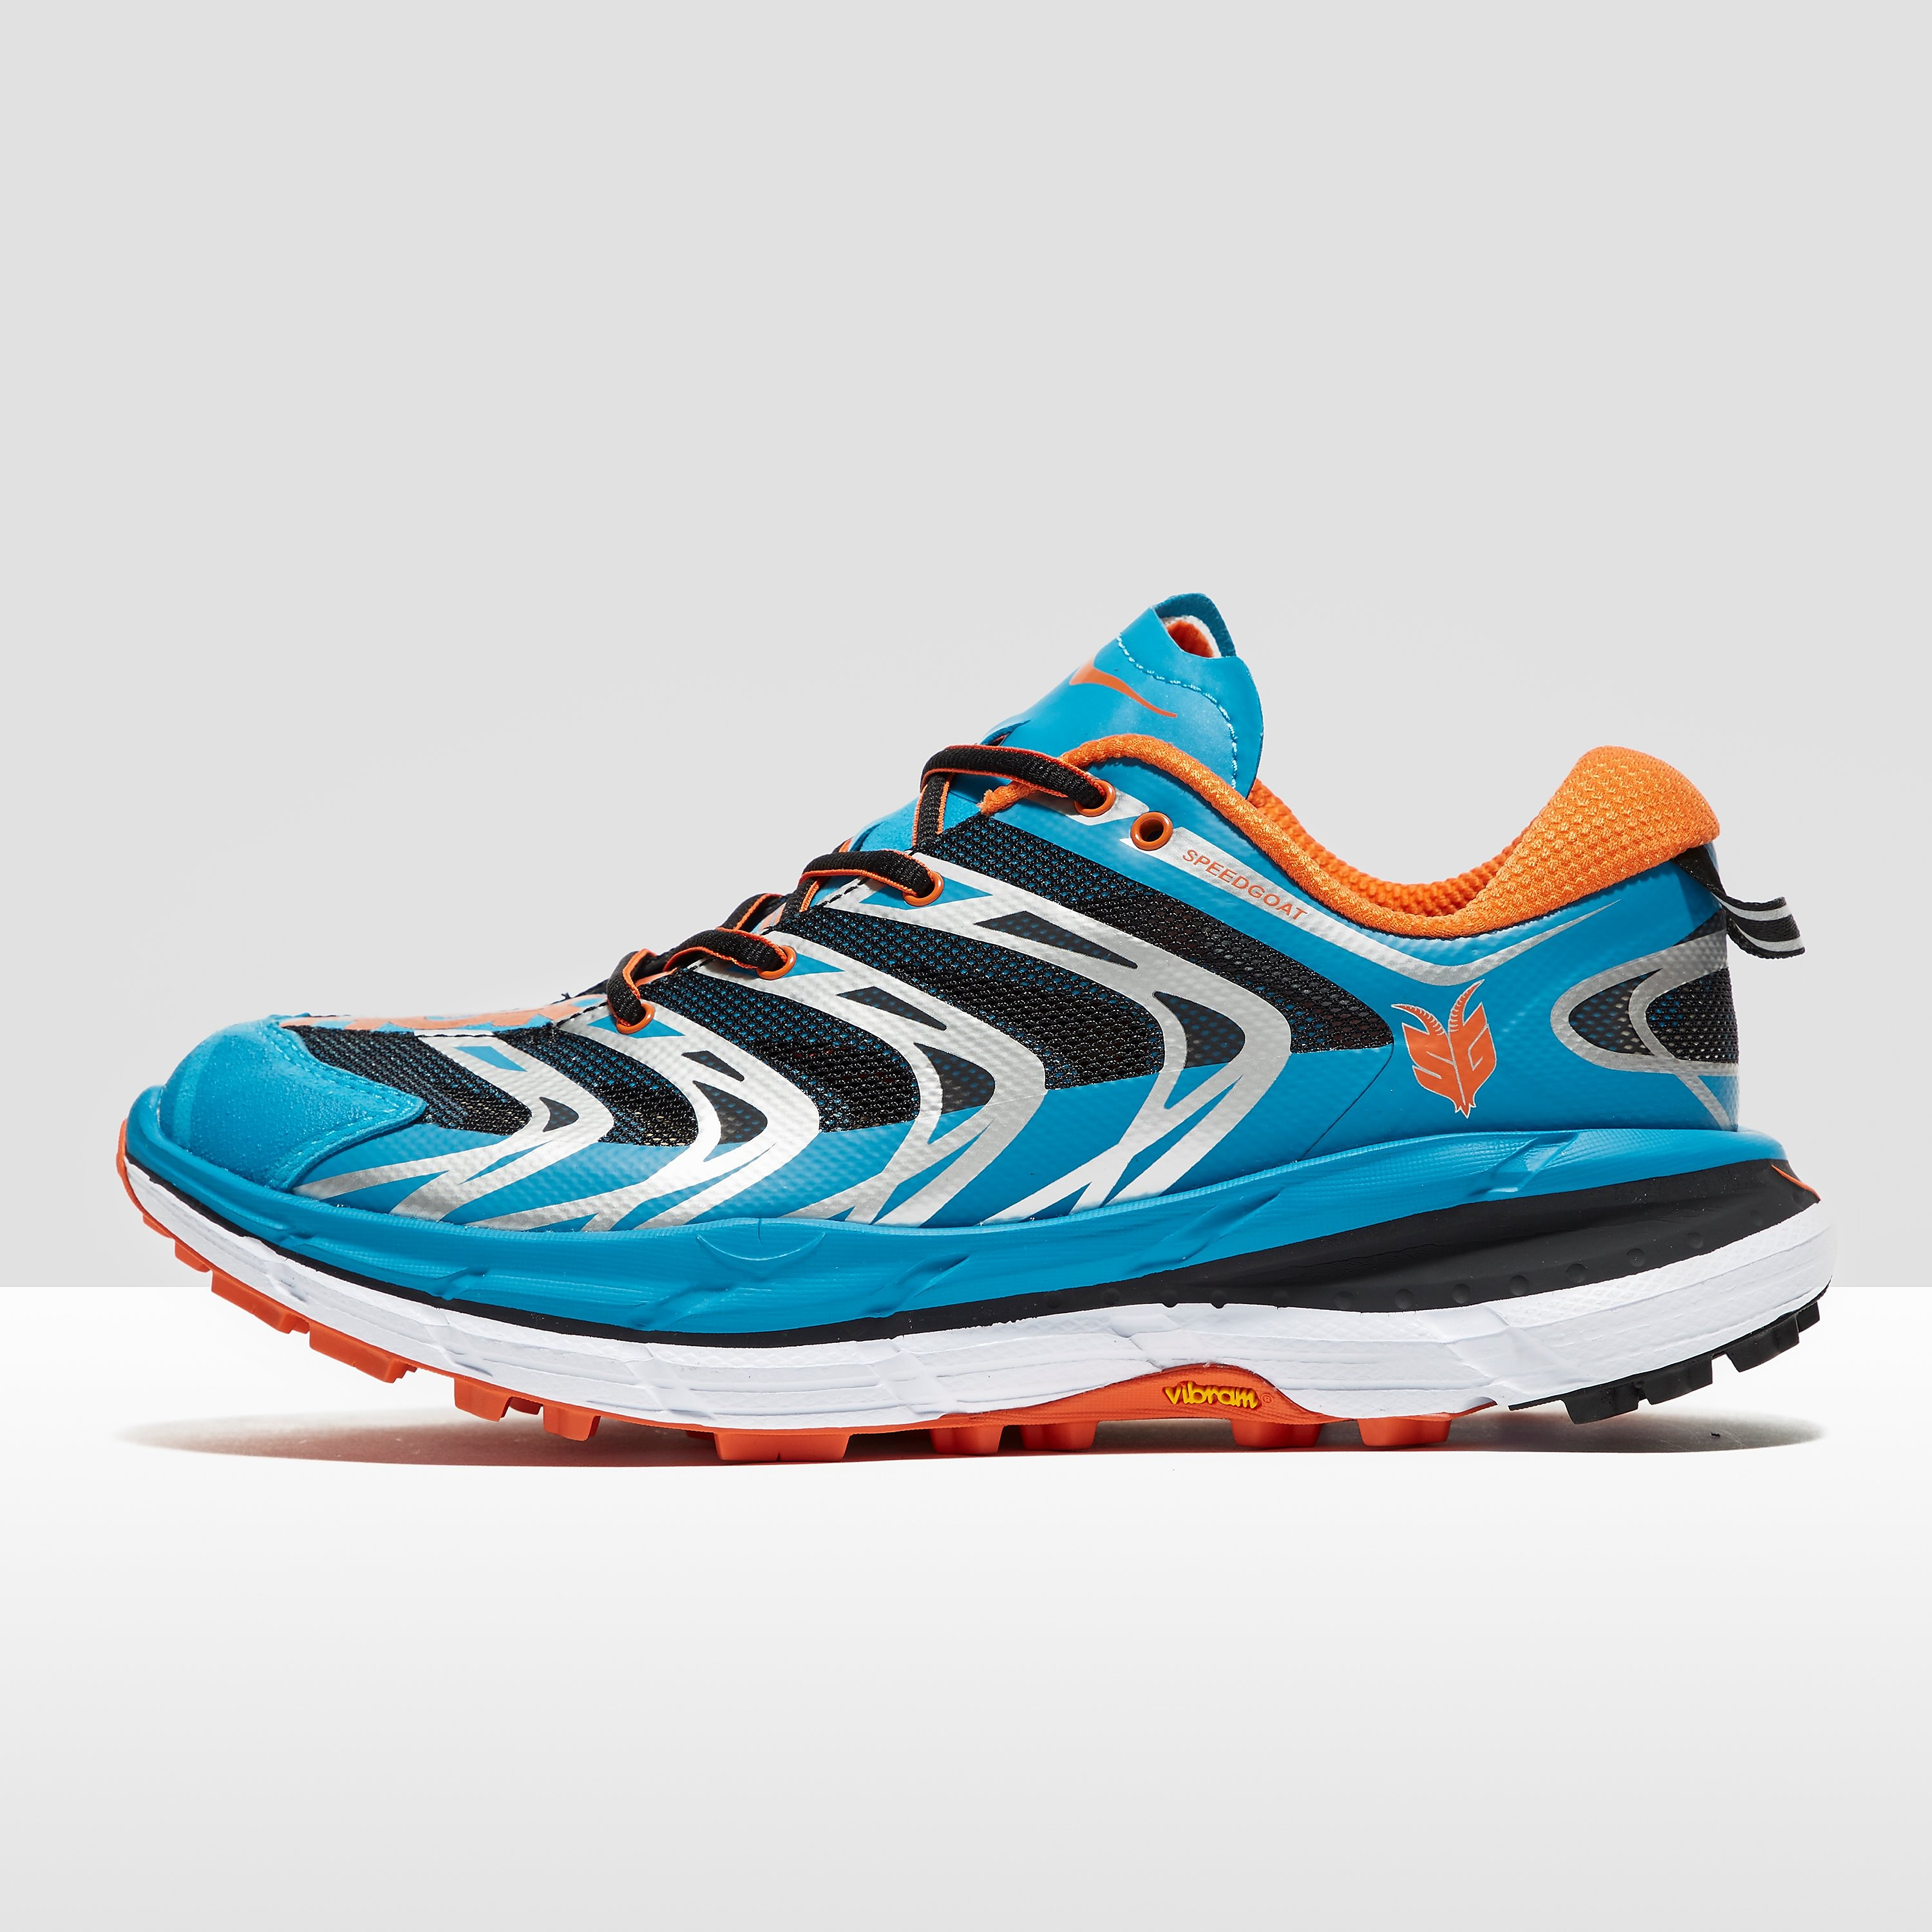 Hoka One One Speedgoat Men's Trail Running Shoes